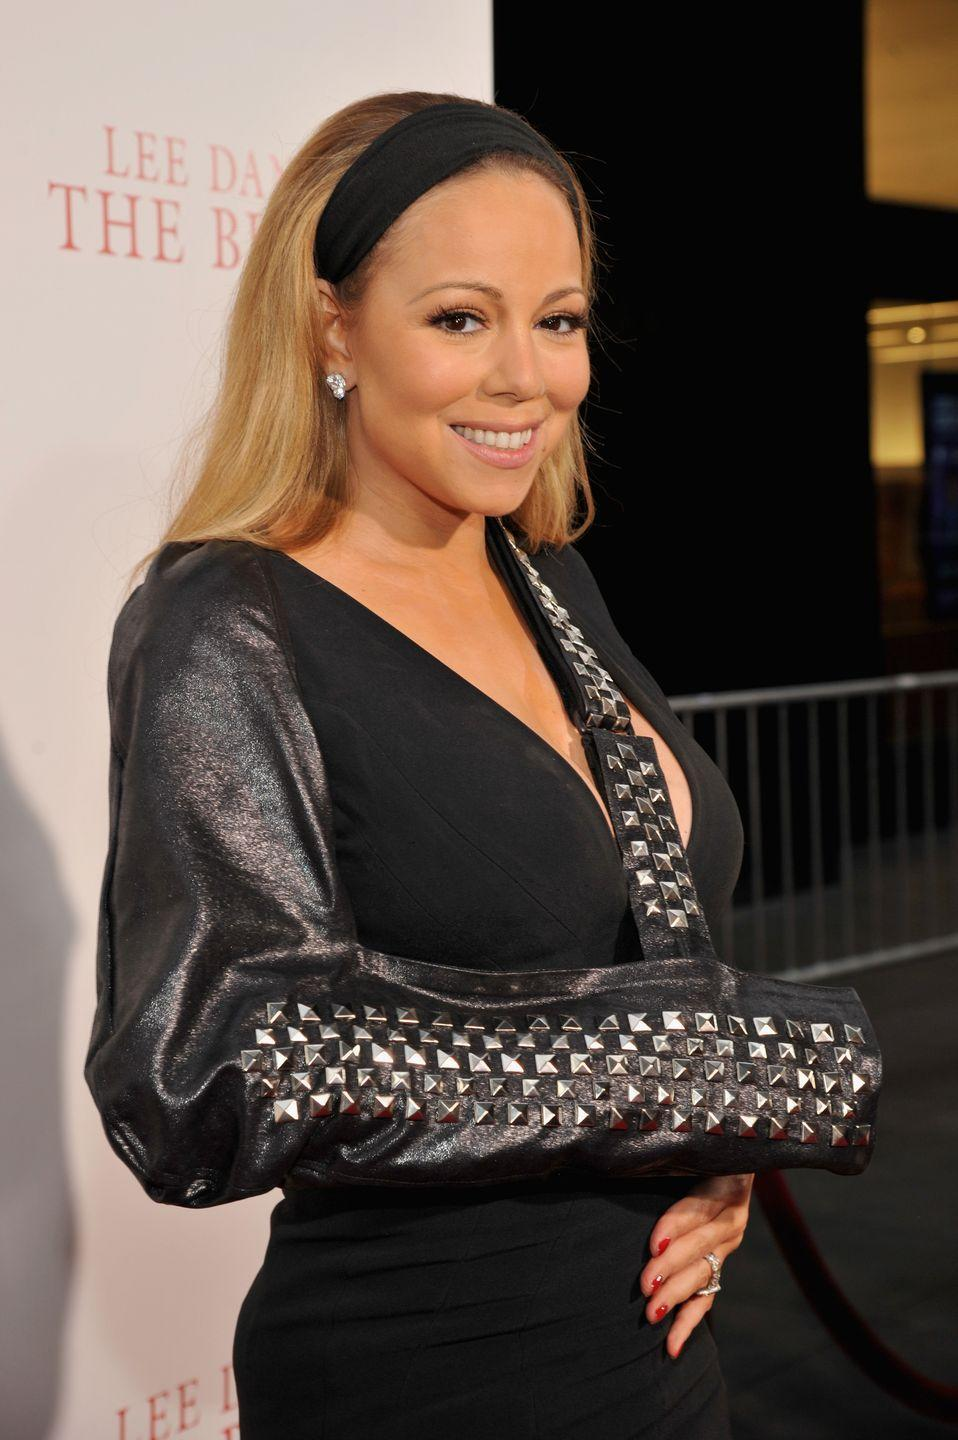 <p>Have a video meeting that you forgot about and need to be on camera? Just grab a thick headband in a neutral color like black and use it to push your short hair back off of your face. Singer <strong>Mariah Carey</strong> gives you an idea of the instantly polished look!</p>